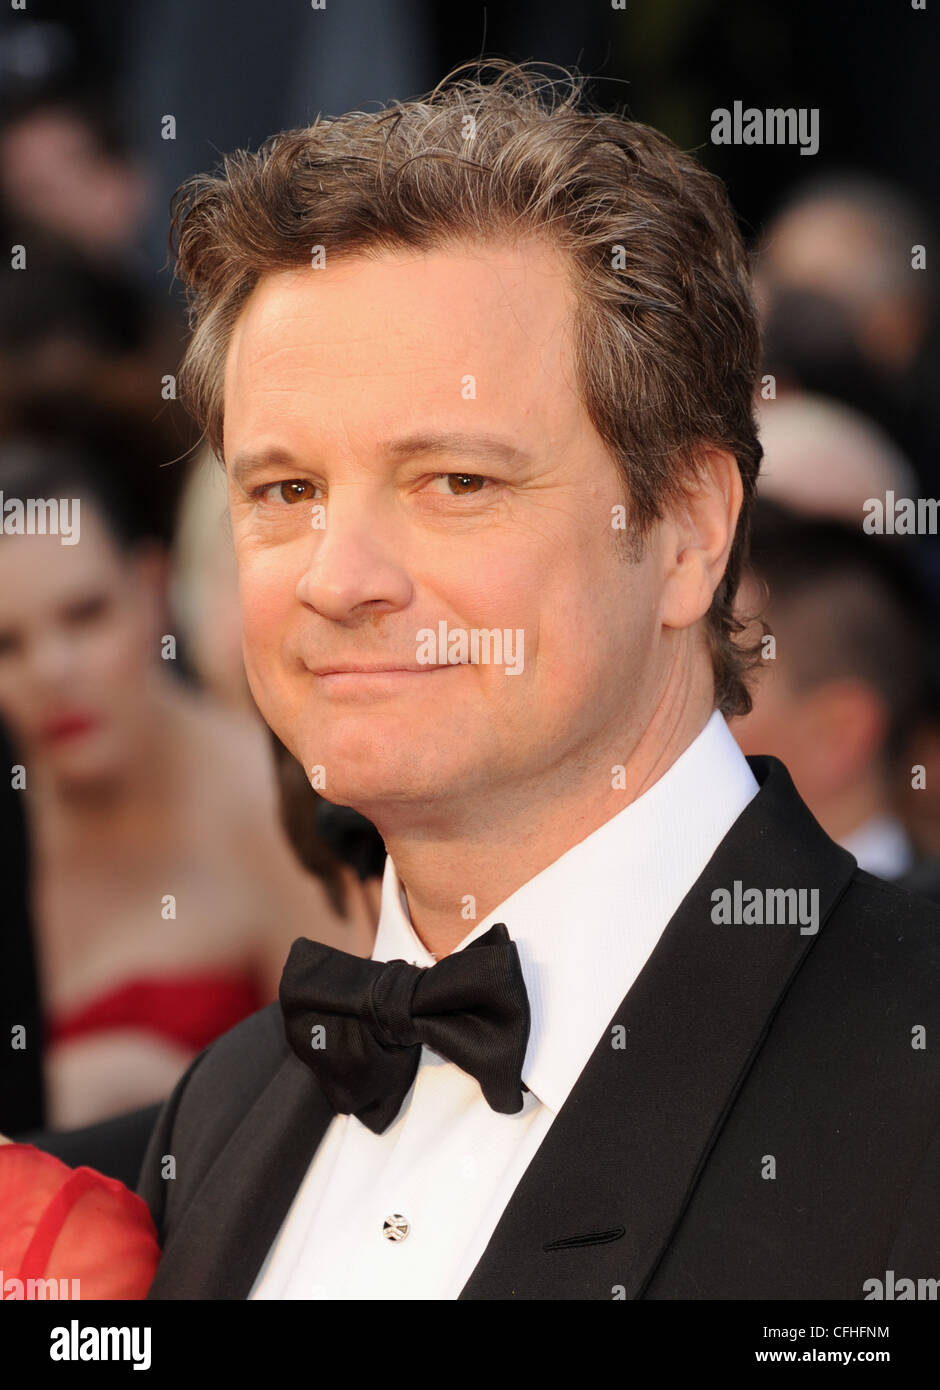 COLIN FIRTH  UK film actor in February 2012. Photo Jeffrey Mayer - Stock Image